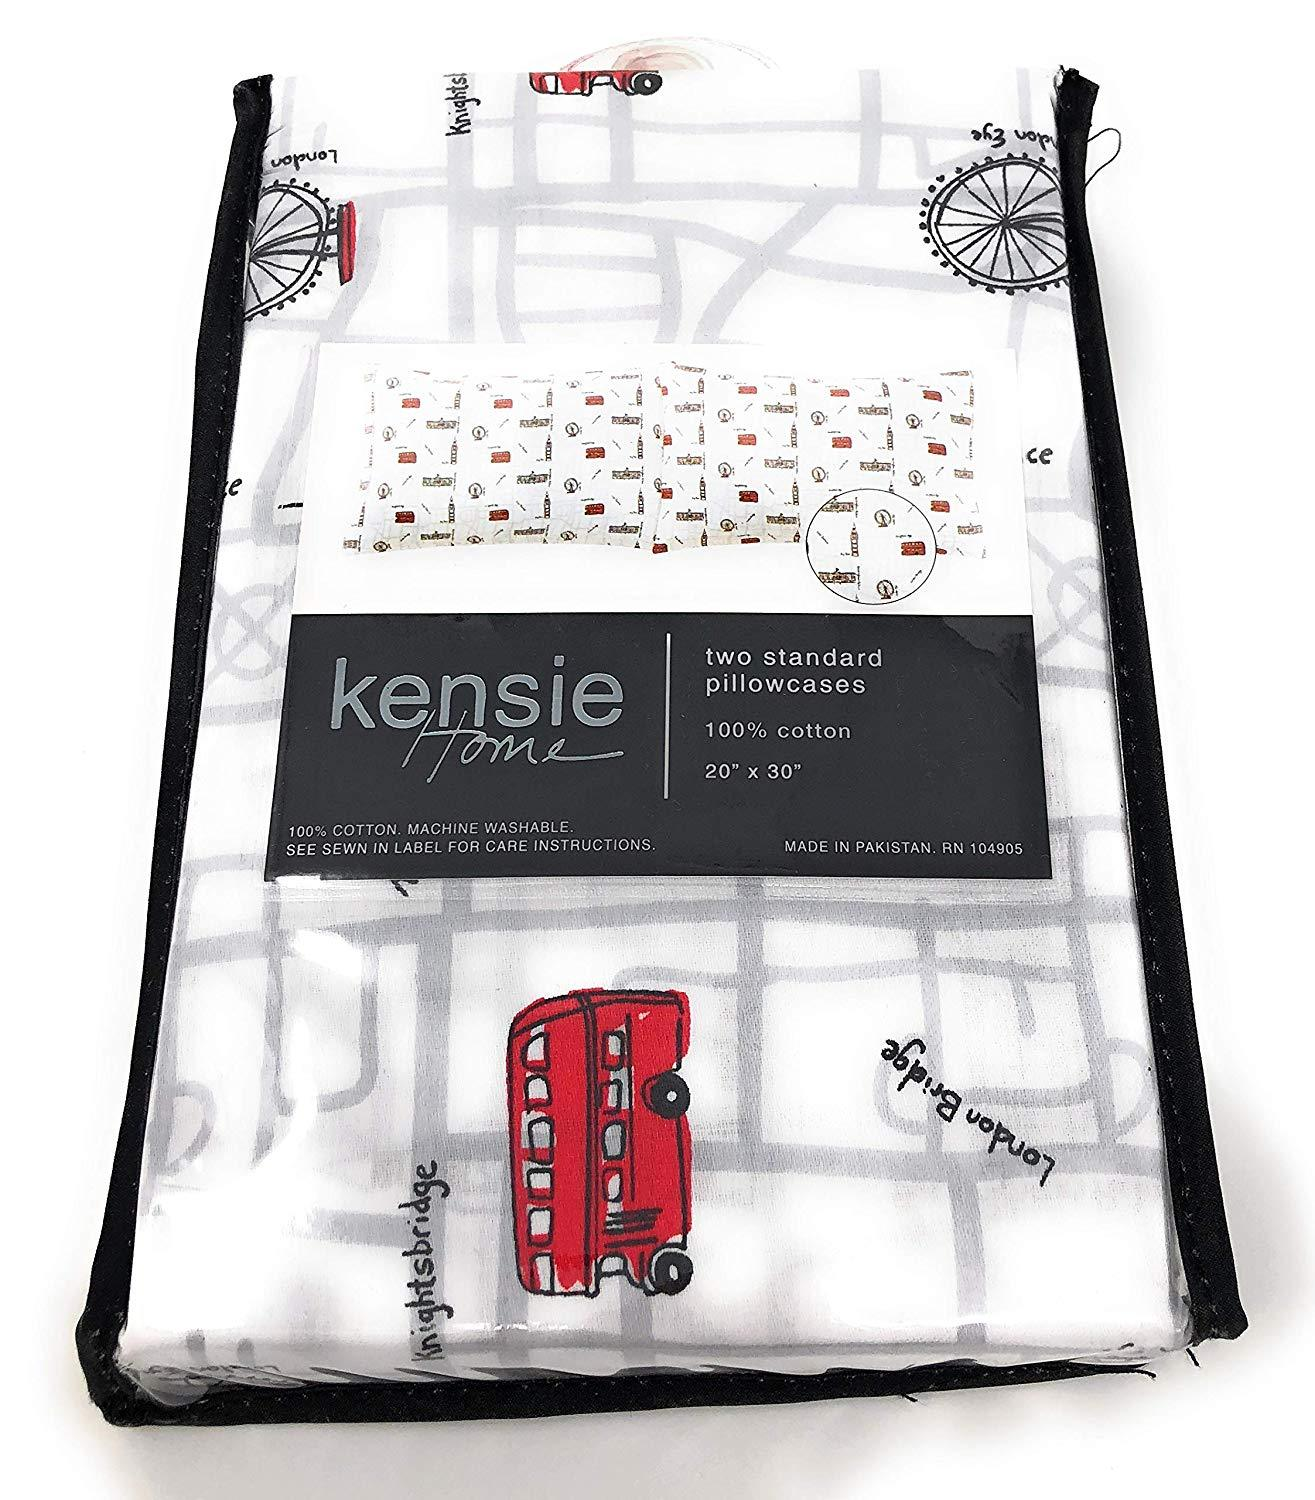 Kensie Home London Streets Map Sites Cotton Pillowcases Standard